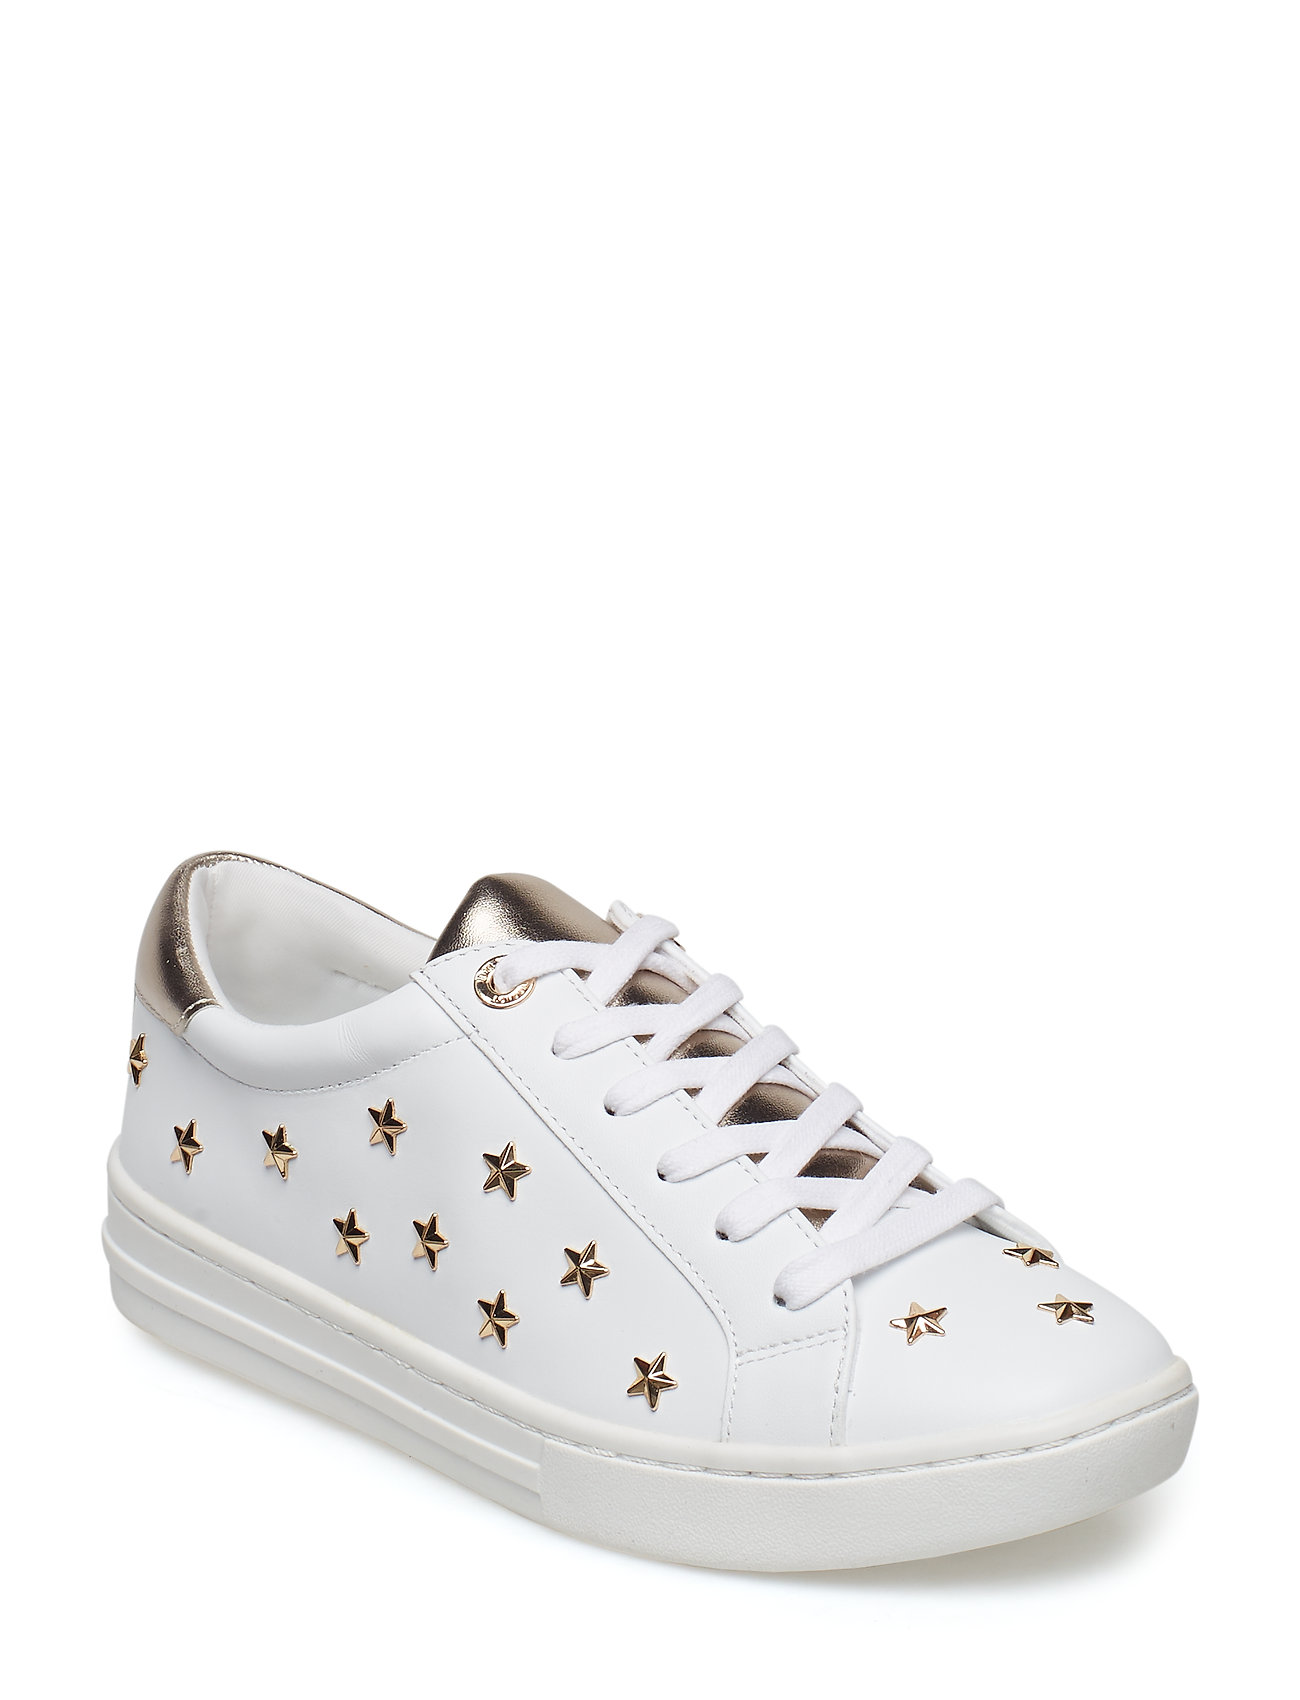 Image of Estel Low-top Sneakers Hvid Dune London (3113429205)